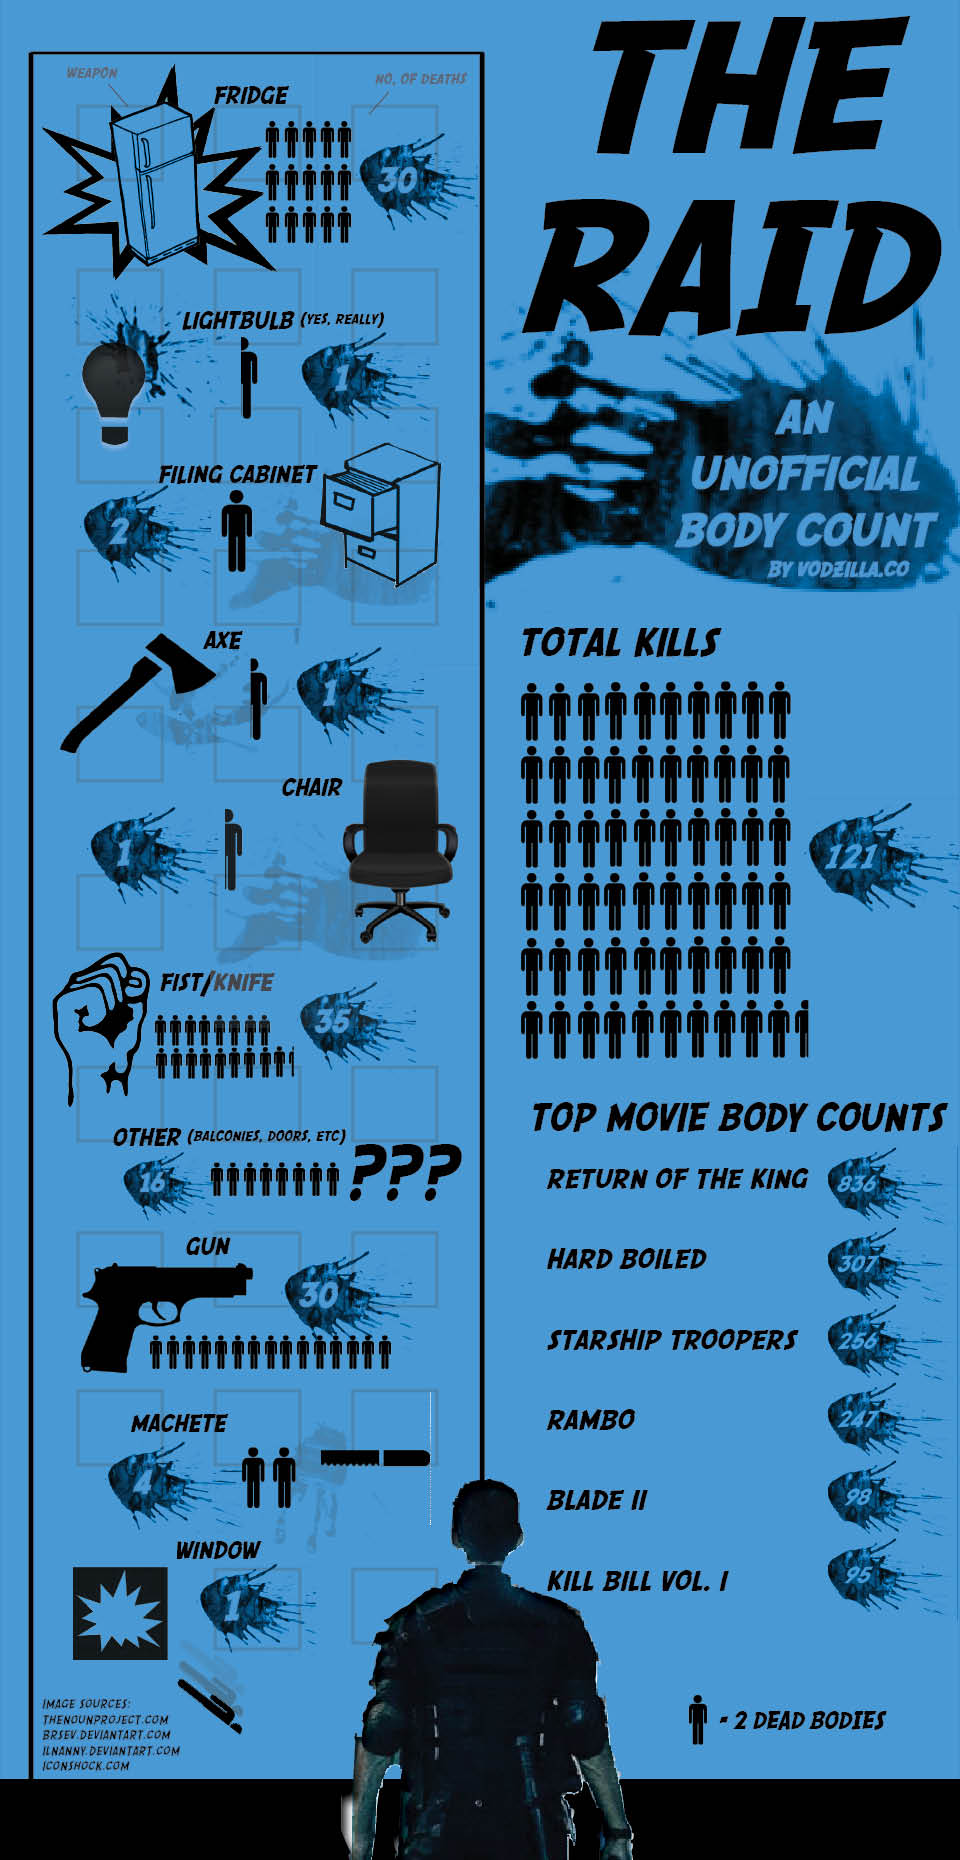 Infographic The Raid 2 Body Count Vodzilla Co How To Watch